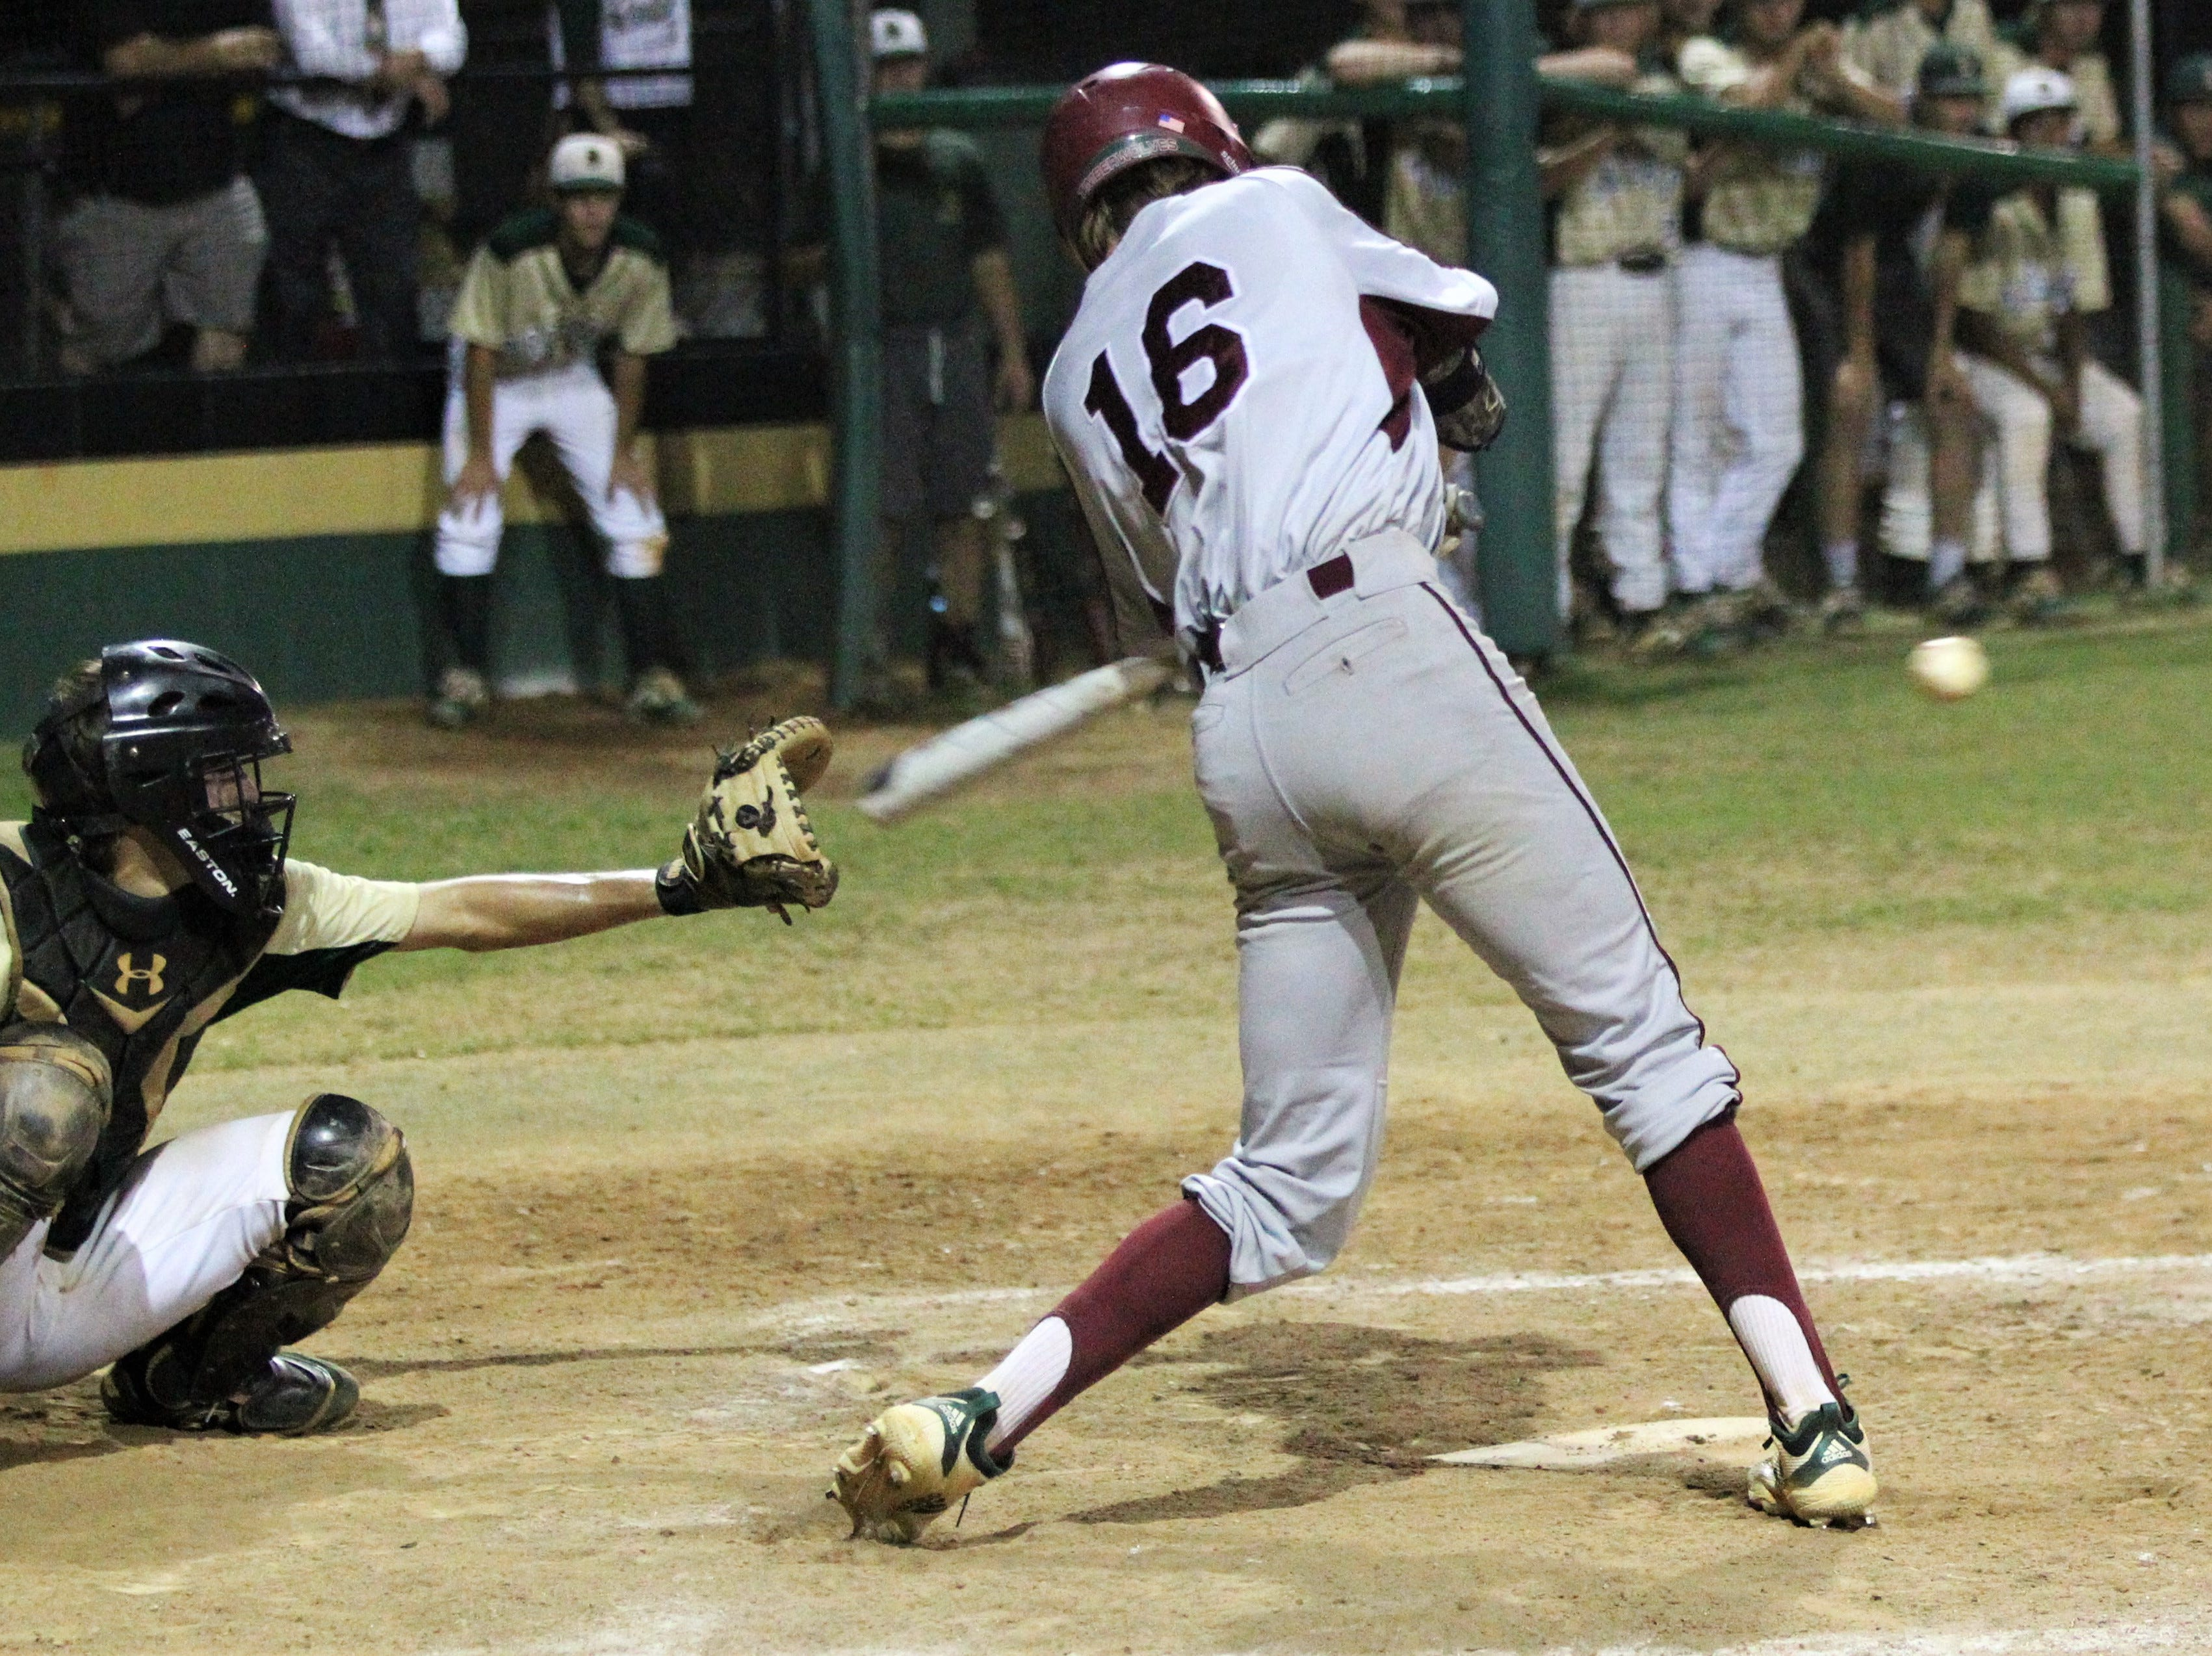 Chiles senior Sam Rudd bats as Lincoln baseball beat Chiles 5-4 in 10 innings during a District 2-8A championship game on Thursday, May 9, 2019.